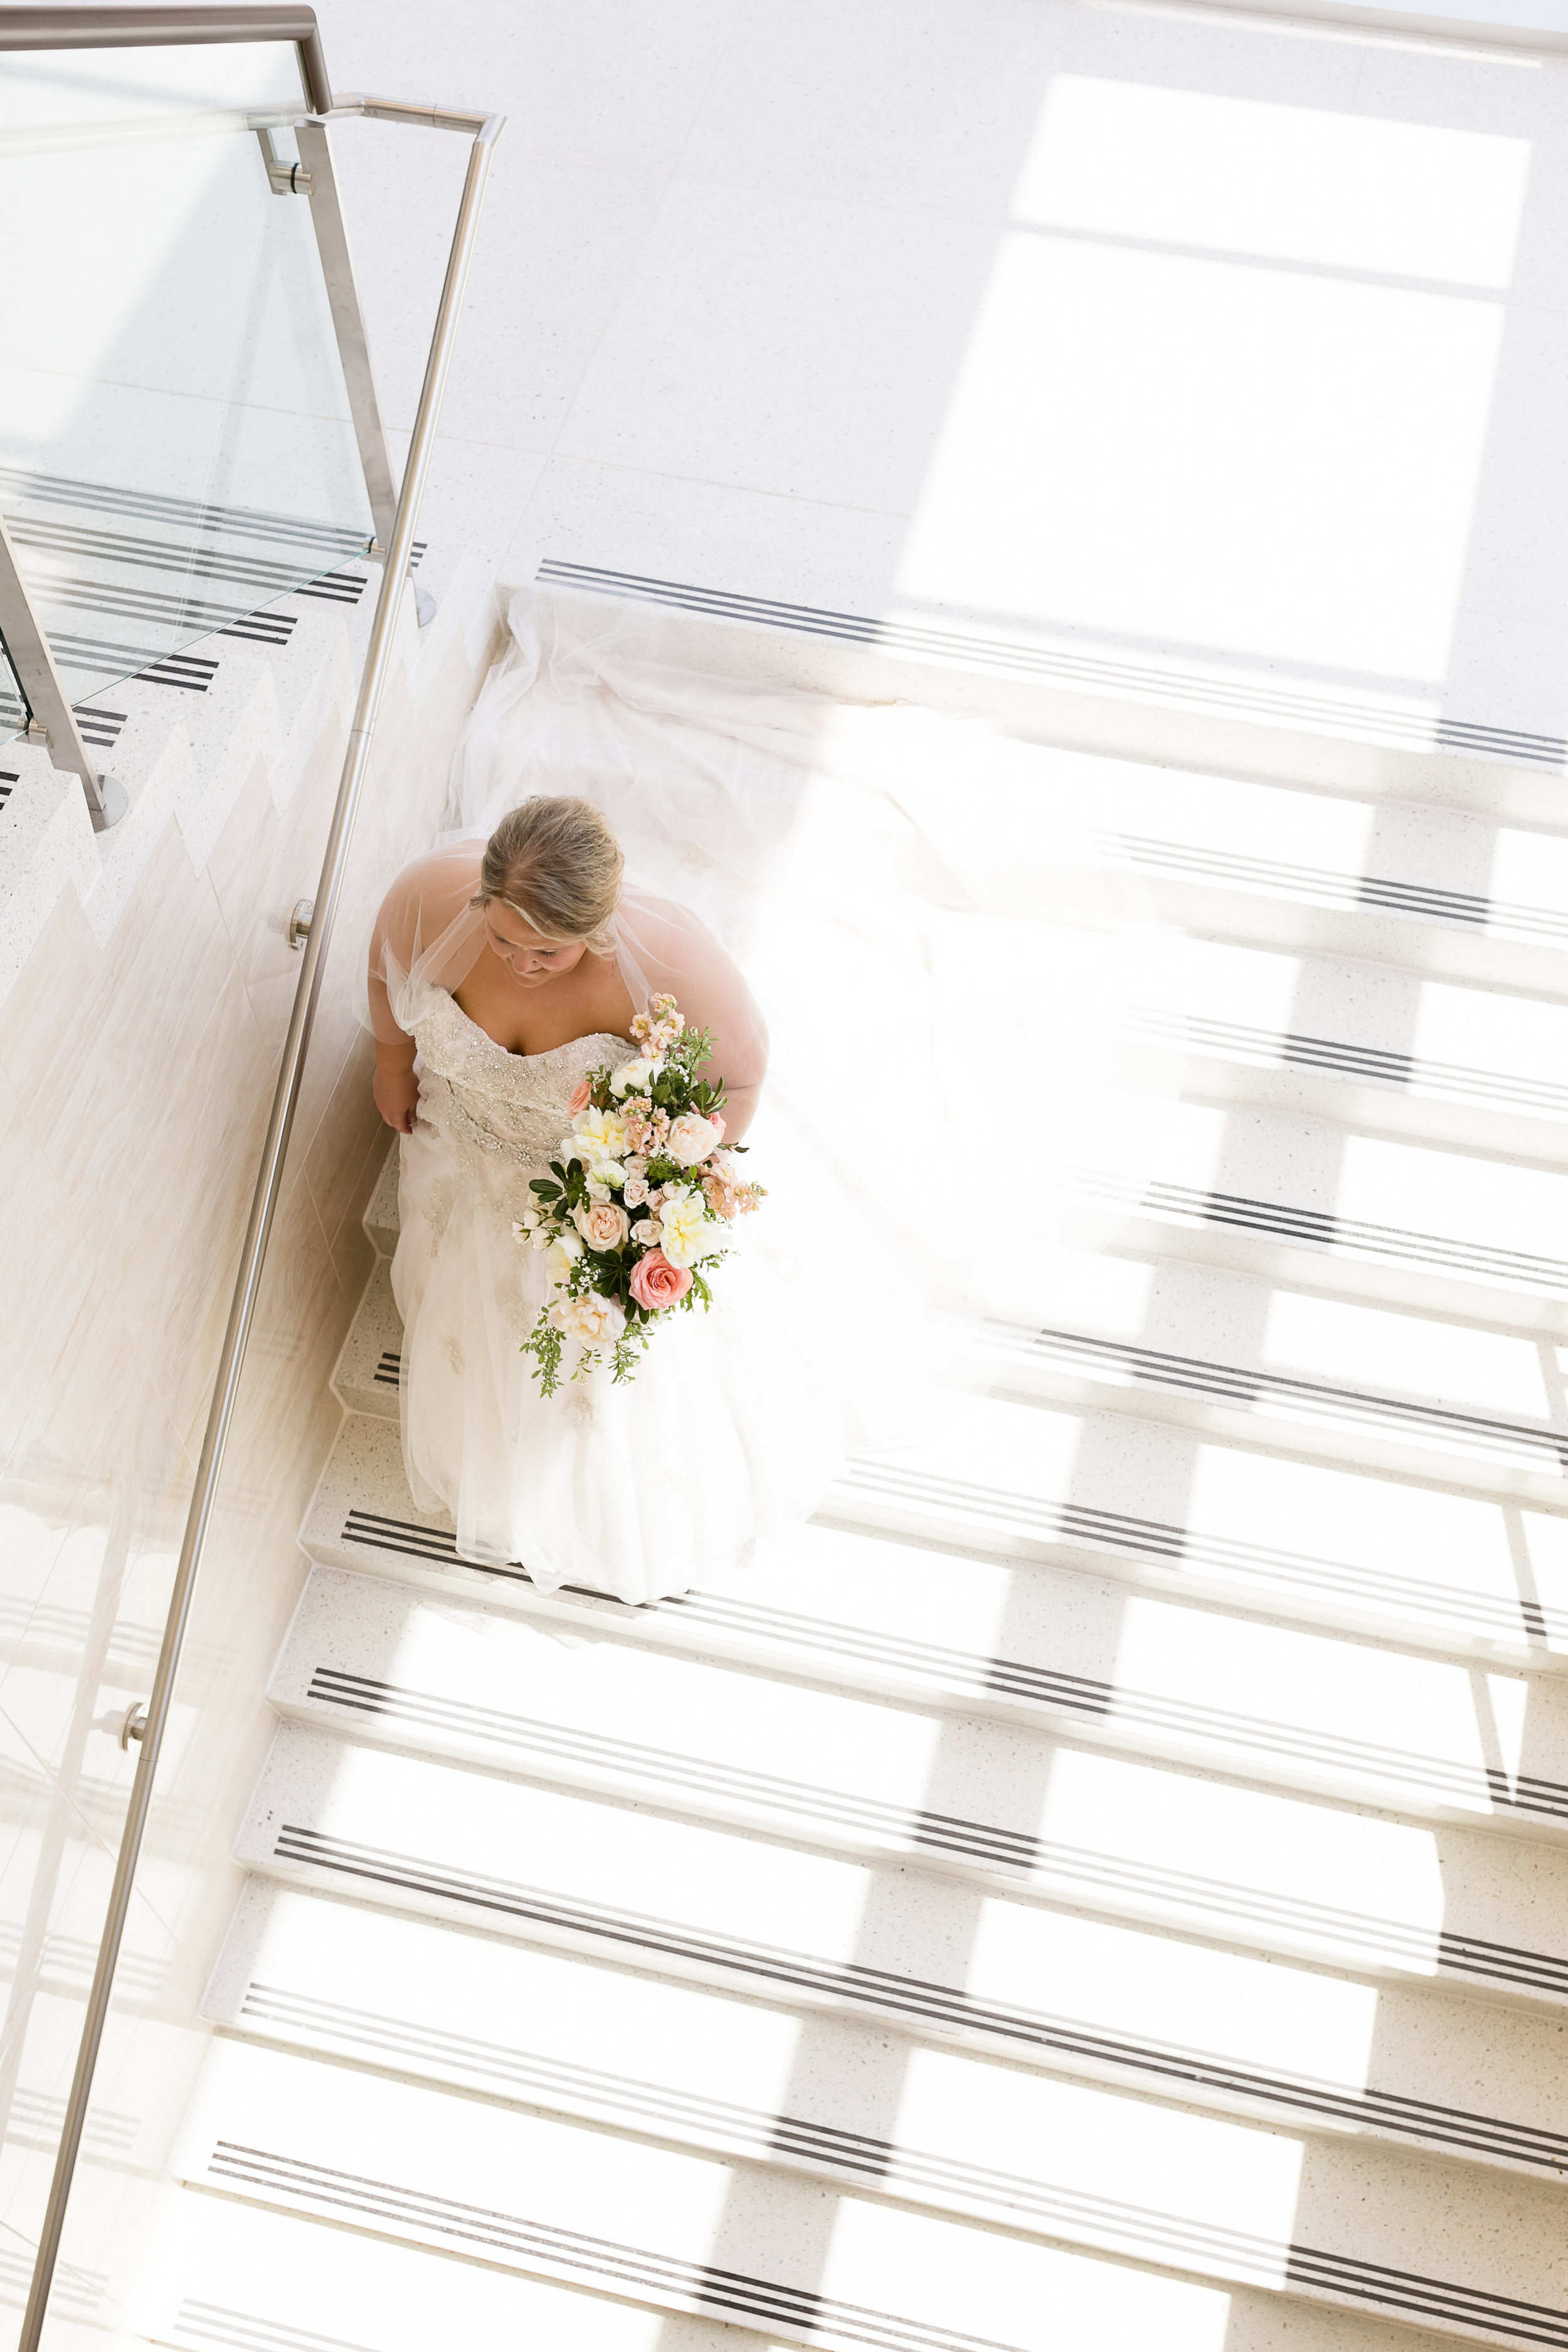 Alice Hq Photographer | Stunning bridal portrait walking down the stairs | full bouquet | princess wedding dress